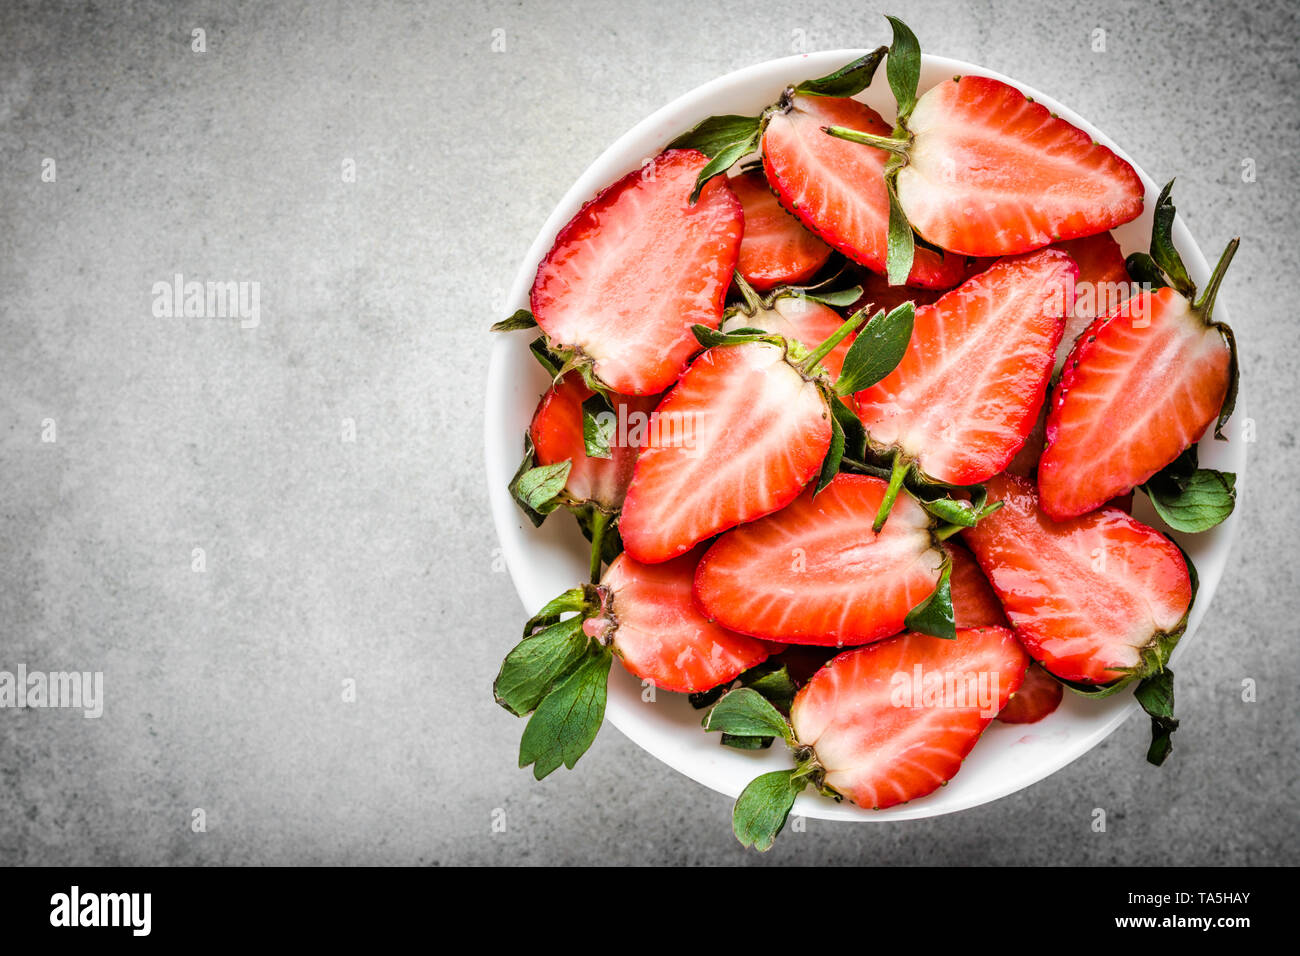 Fresh strawberry, top view. Plate with juicy slices of strawberries. - Stock Image